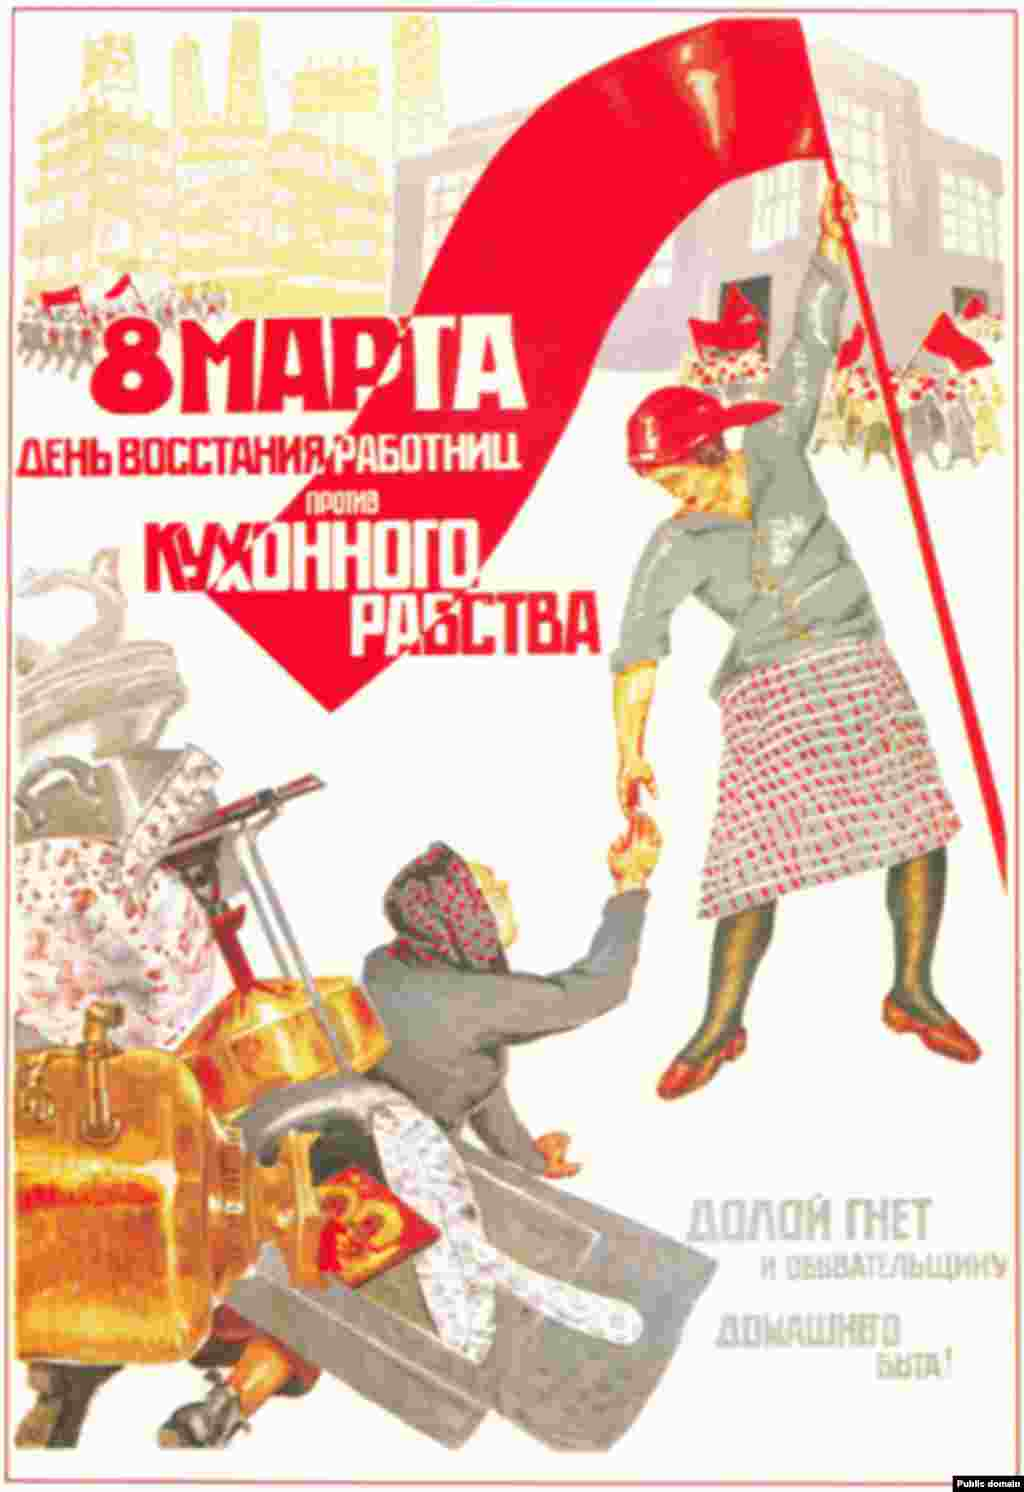 """A 1932 poster shows the political origins of International Women's Day. The text reads: """"March 8: A day of rebellion by working women against kitchen slavery. Say no to the oppression and vacuity of household work!"""""""